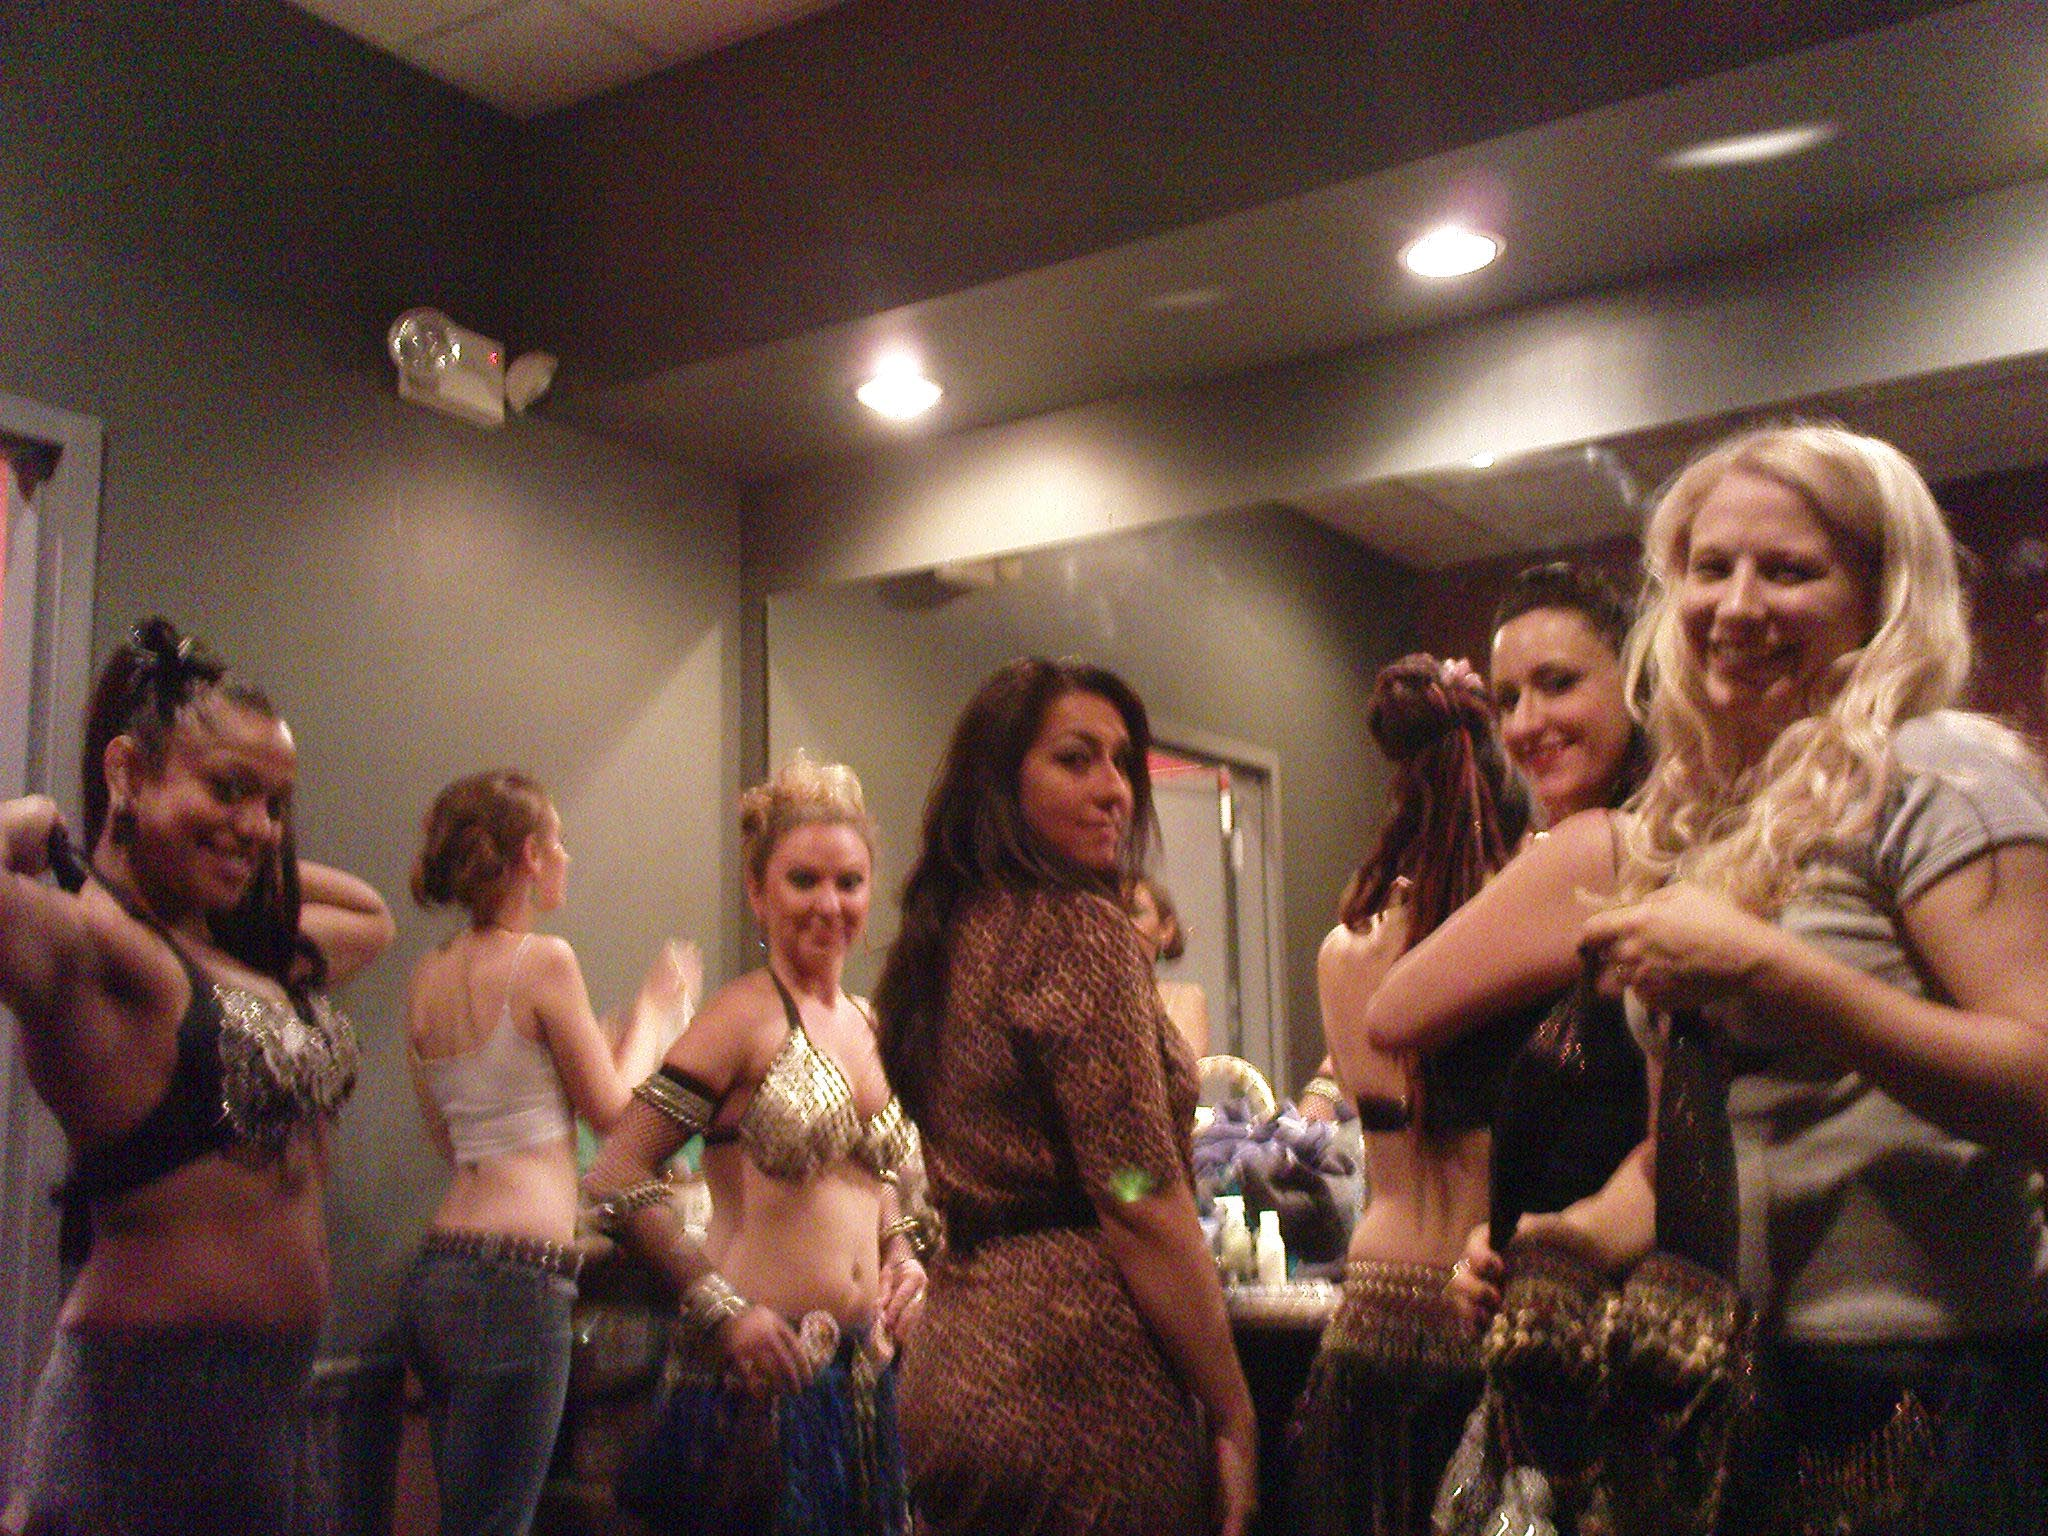 Backstage girls